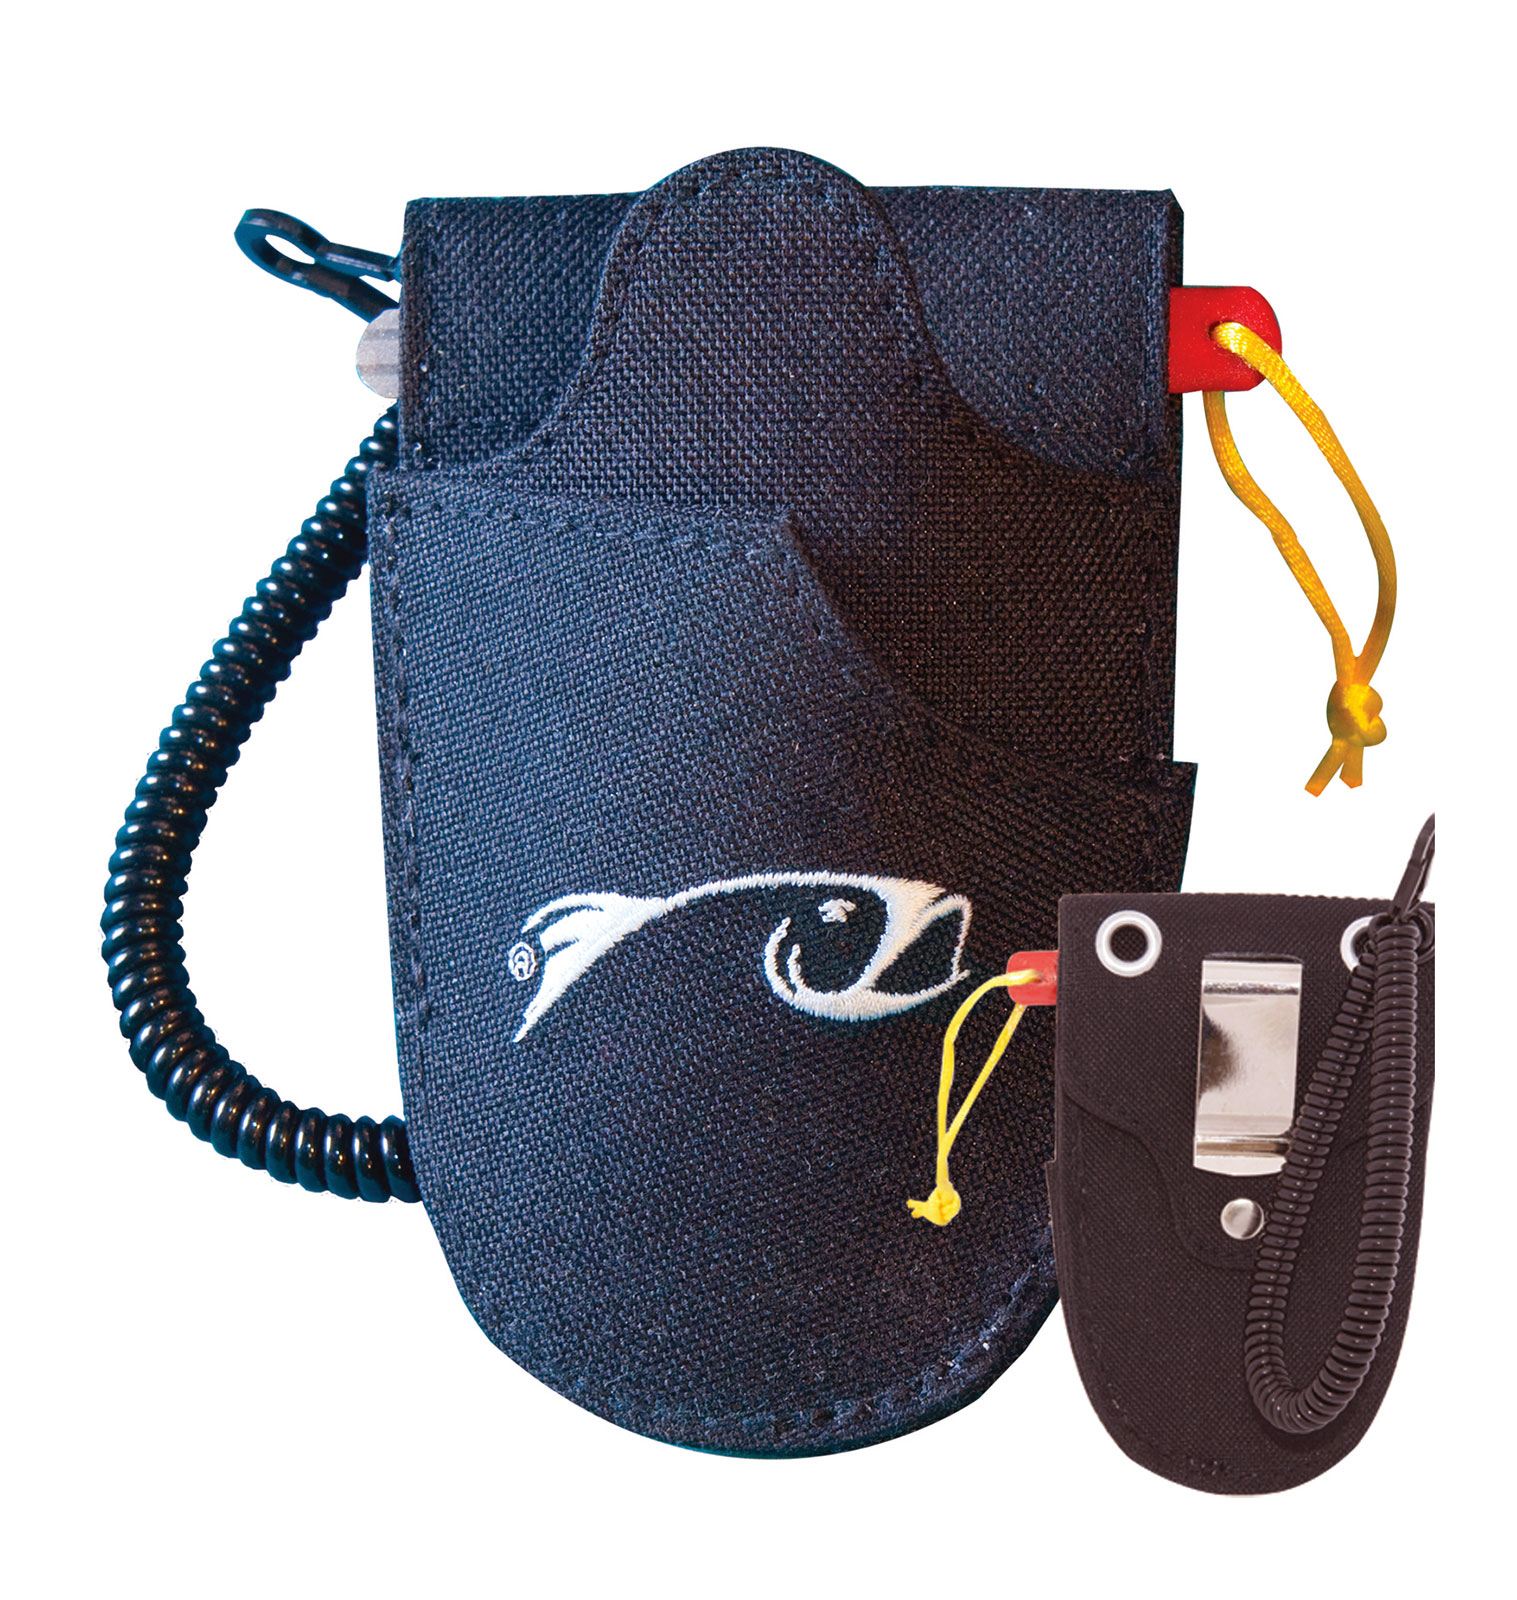 Rising Fly Fishing Tool Holster With Diamond Hook File and Coil Leash